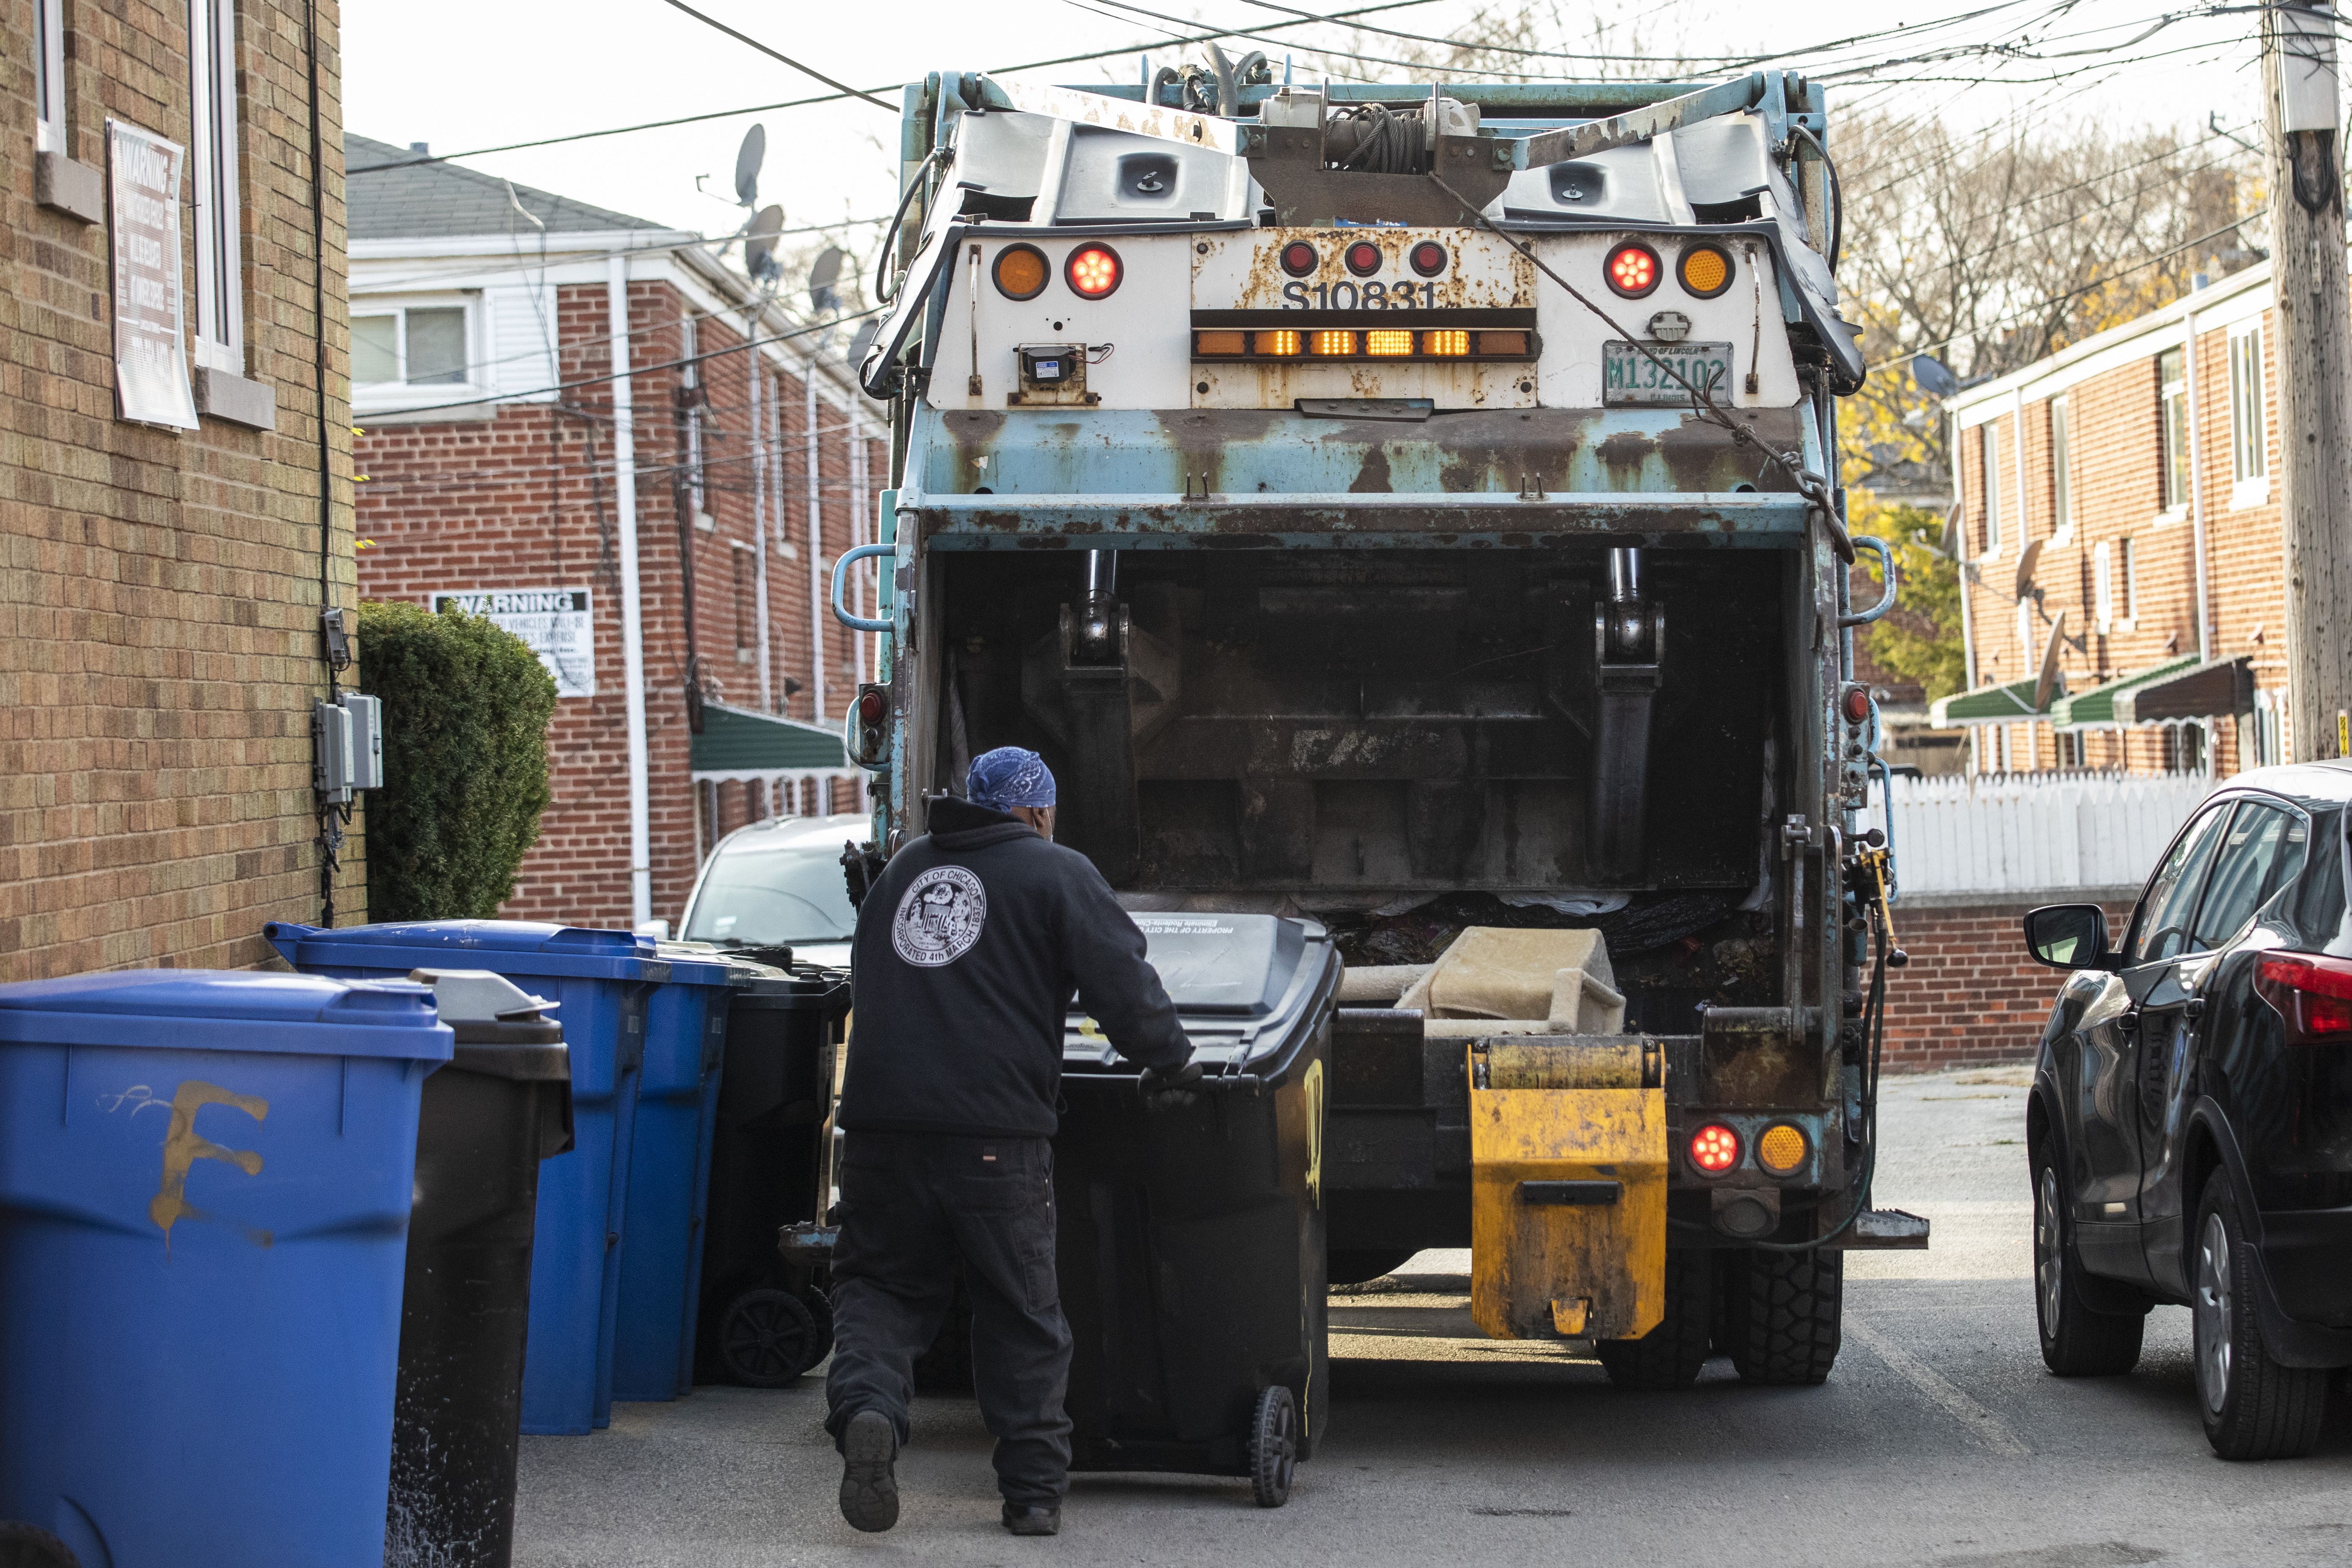 A worker with the city's Department of Streets and Sanitation loads a garbage truck in the 7500 block of North Ridge Boulevard in Rogers Park